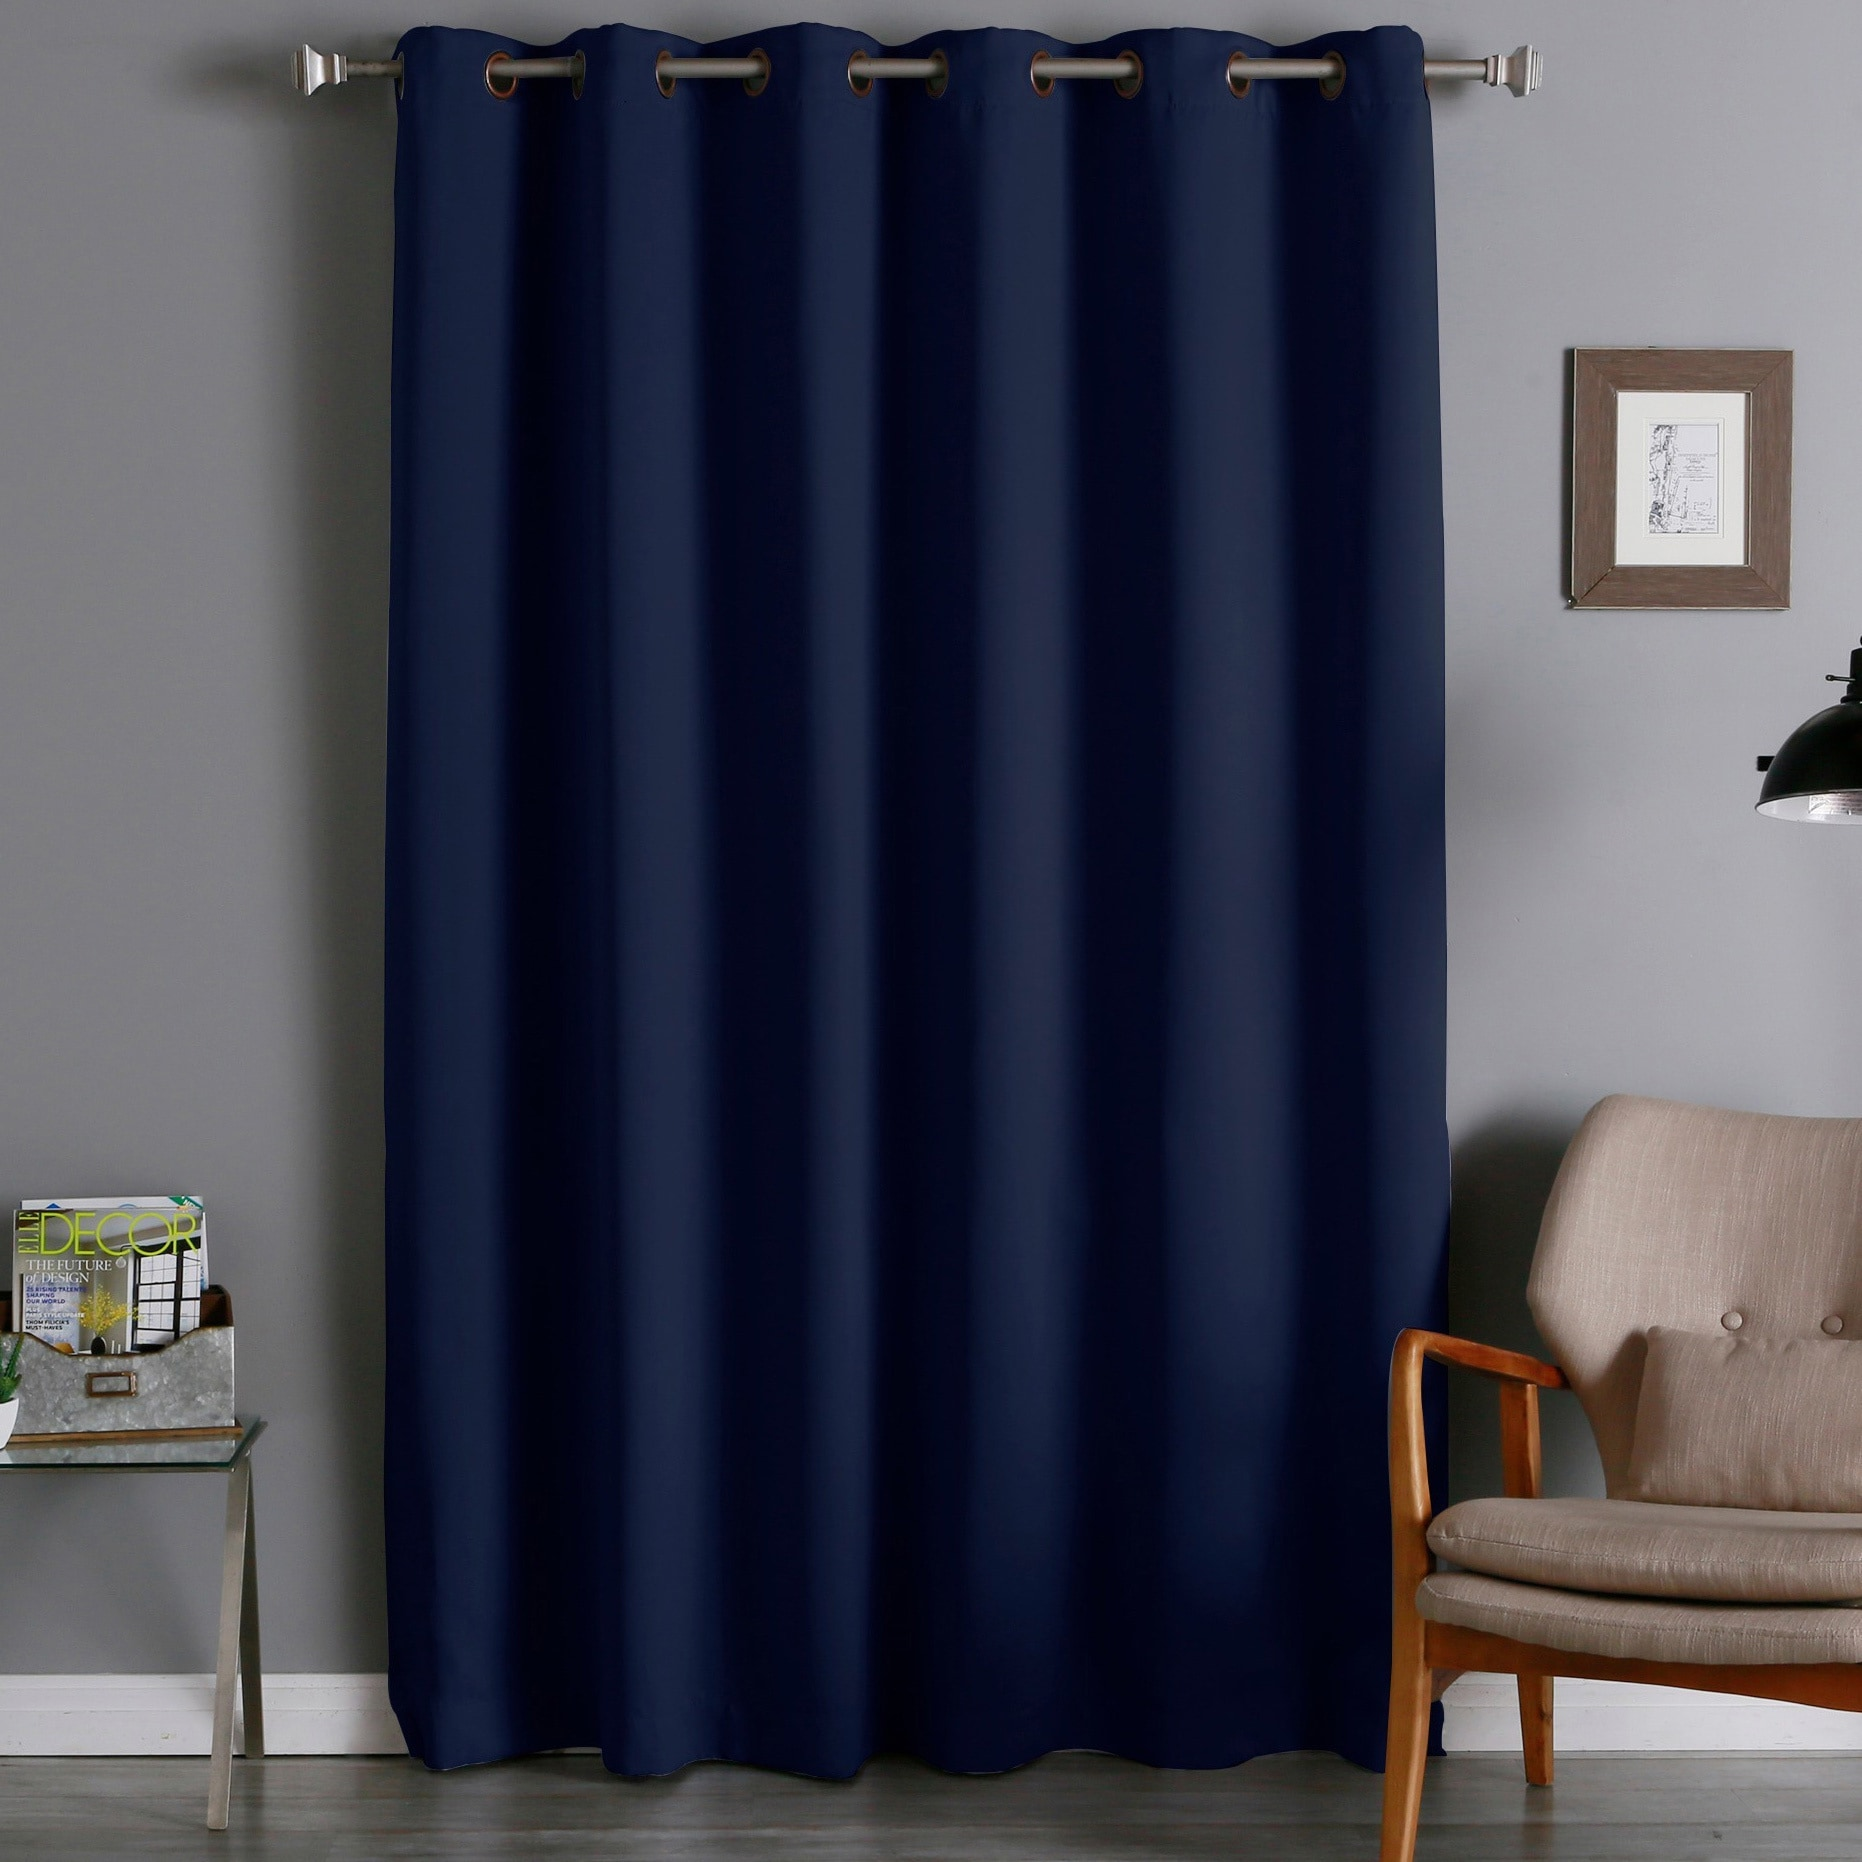 Shop Aurora Home 96-inch Wide-width Thermal Blackout Curtain Panel ...